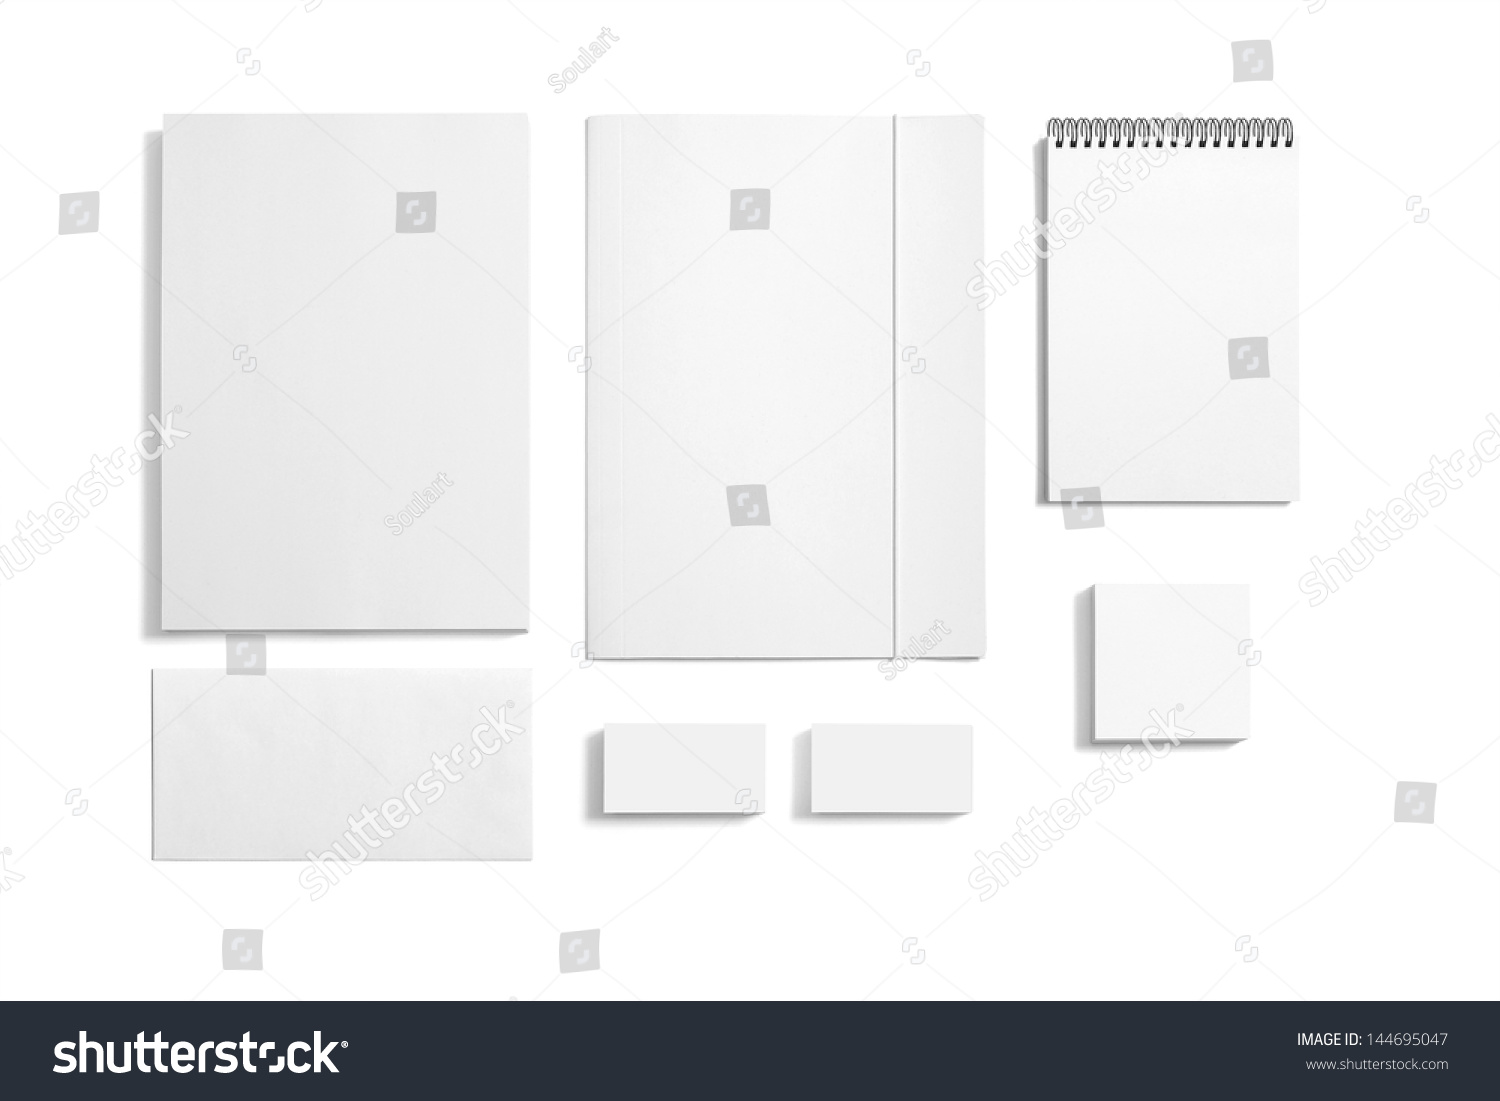 Blank Stationery Templates Blank Stationery Folder – Reminder Note Template